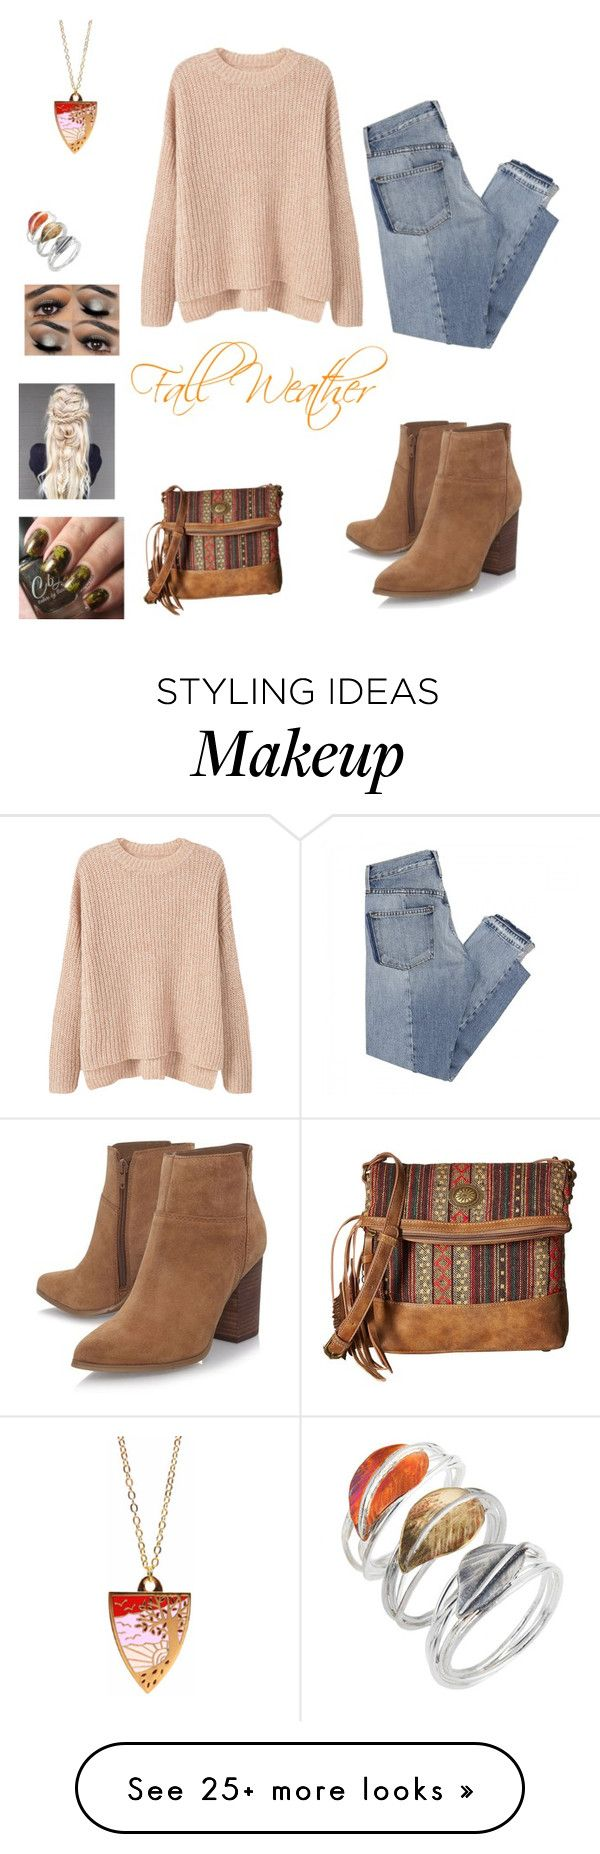 """""""Fall Weather"""" by jtandks on Polyvore featuring Caroline Royal, MANGO, Mix Nouveau, Nine West, Bonbi Forest and American West"""